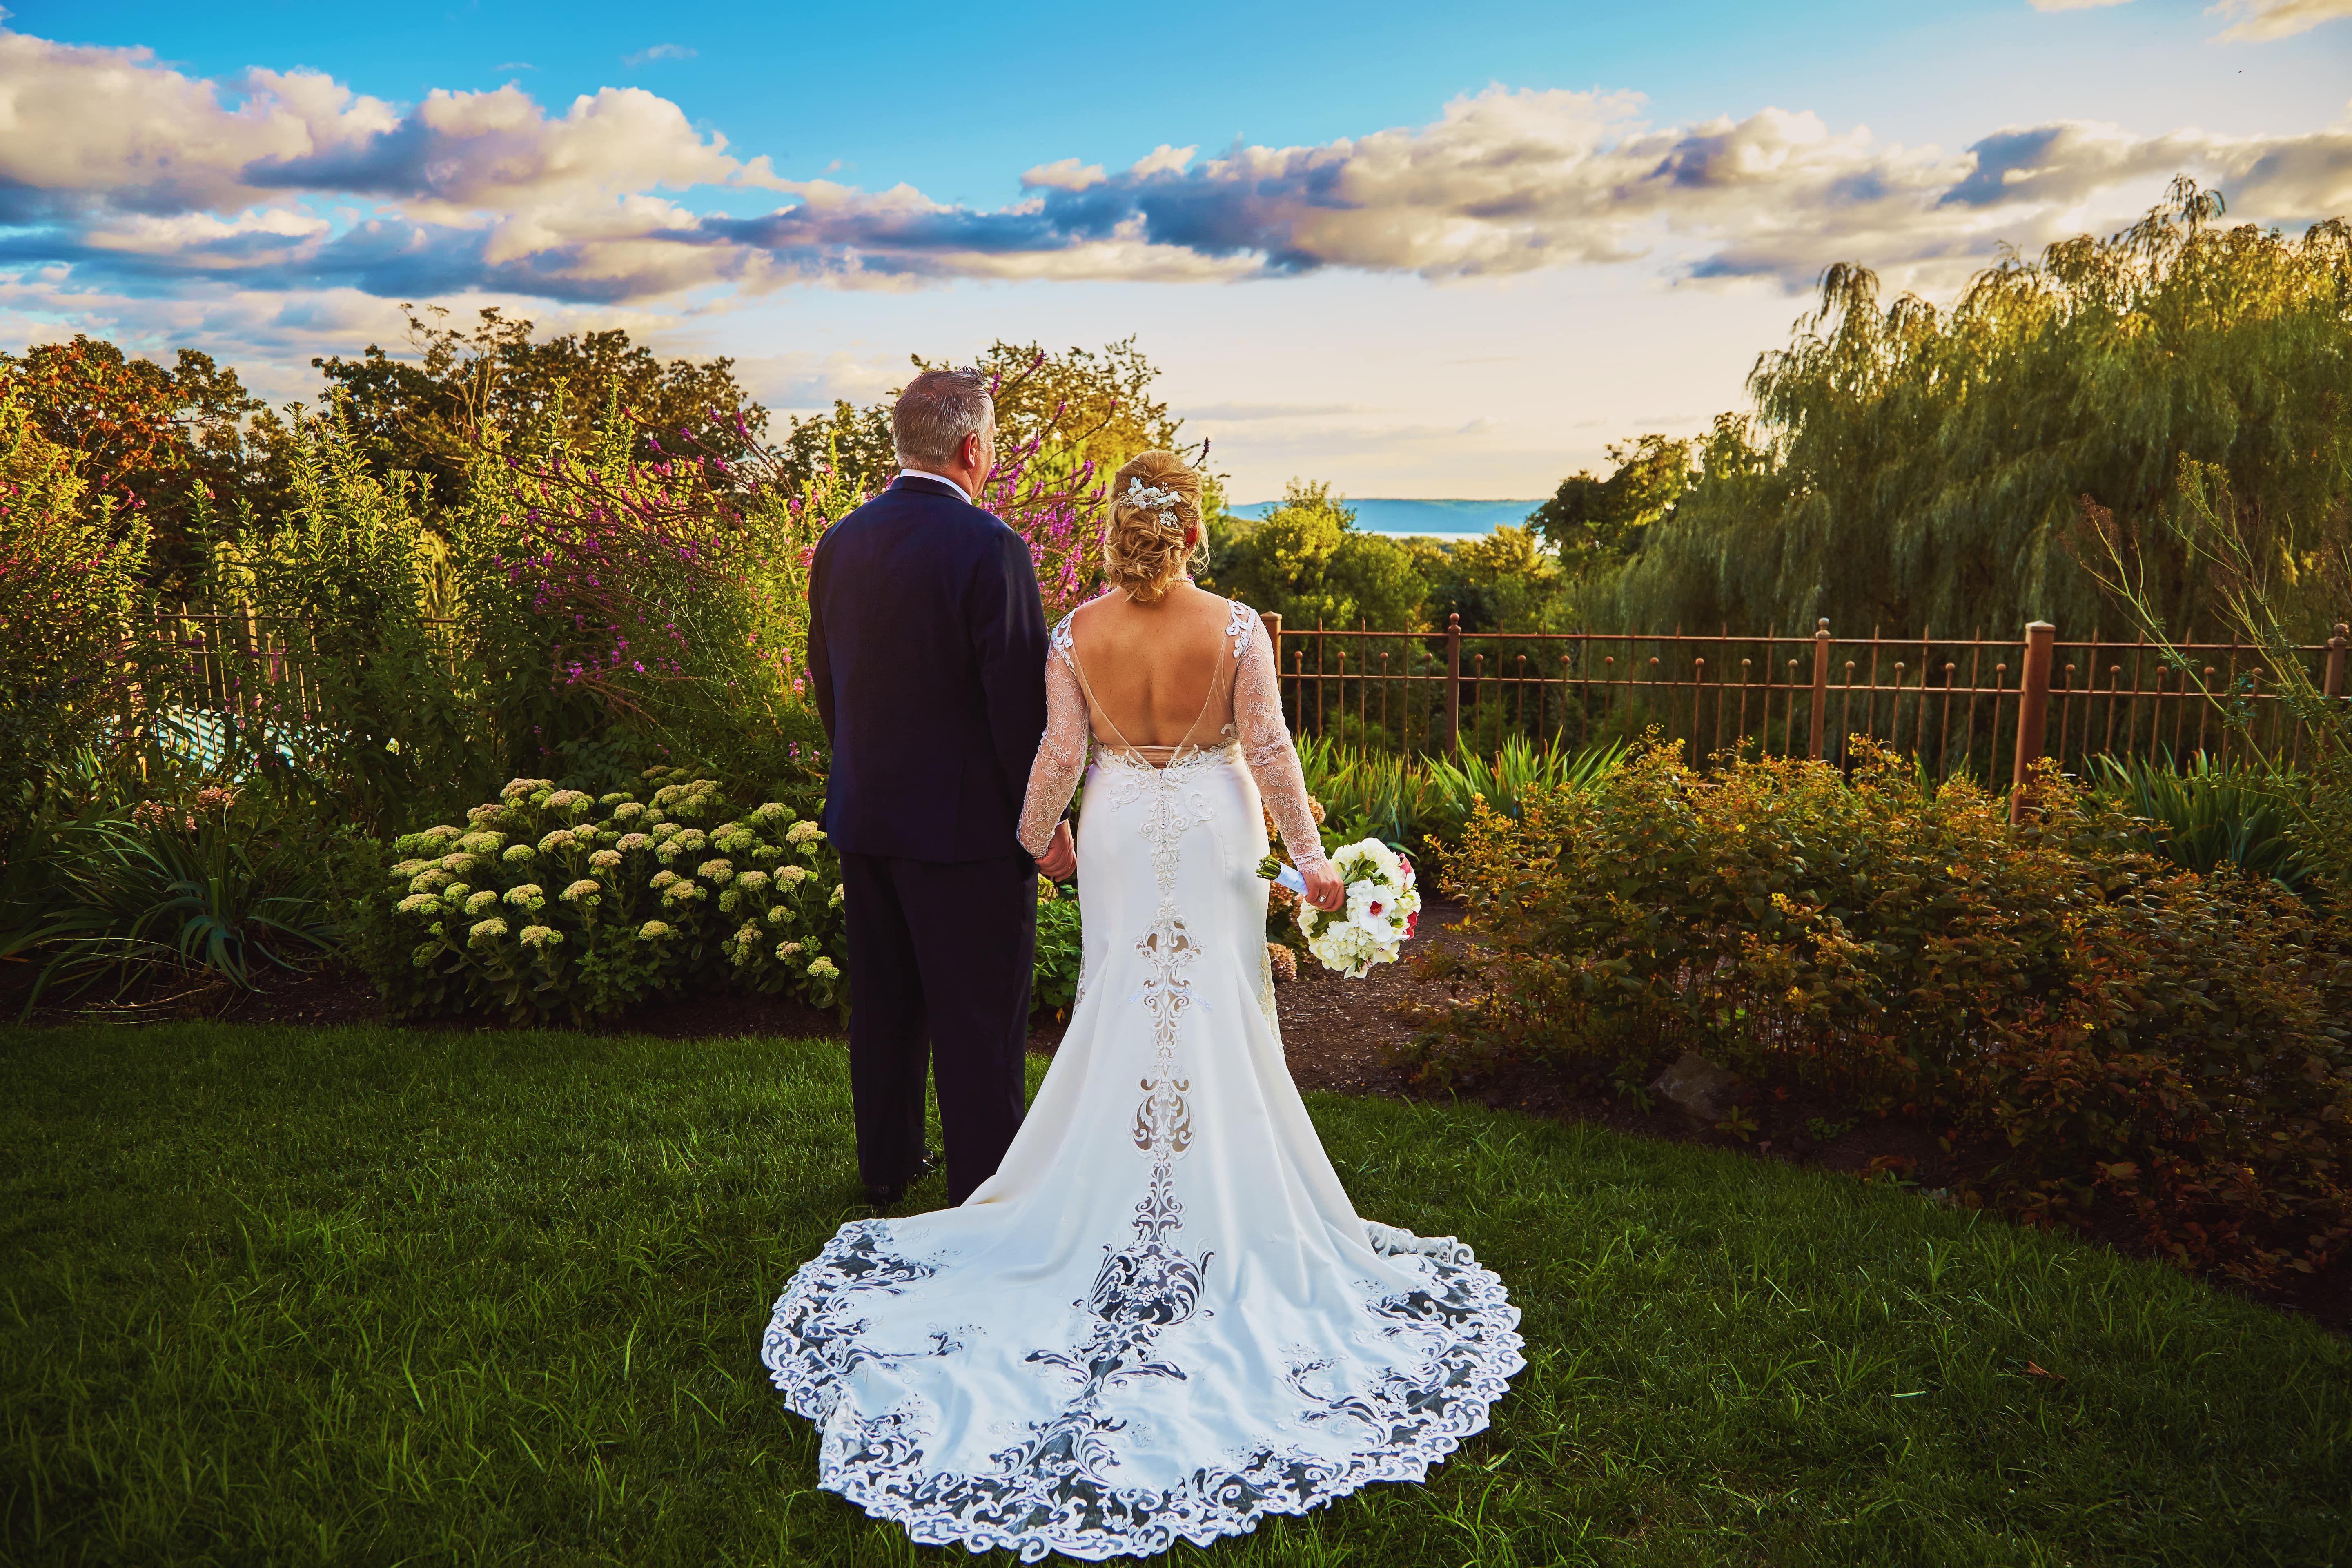 Wedding Photography in Garrison, outdoor party venues nyc, best manhattan wedding venues, small weddings in new York, loft wedding venues nyc, catering halls in manhattan, brunch wedding reception nyc, getting married in new york packages, wedding chapel nyc, wedding catering nyc, manhattan wedding locations, party halls in new York, manhattan wedding venues affordable, wedding venues central ny, best wedding venues upstate ny, catering halls in ny, new york new york wedding, wedding venues memphis tn, venue rental nyc, small intimate wedding venues nyc, wedding venues tri state area, manhattan wedding venues with a view, small rooftop wedding nyc, alternative wedding venues nyc, westchester wedding venues, cheap wedding venues nyc, intimate wedding venues new York, new york winter wedding, nyc city hall wedding, garden wedding nyc, nyc winter wedding venues, intimate wedding nyc, new york hotel wedding, small wedding chapels in nyc, reception halls nyc, outdoor wedding nyc, wedding resorts in new York, all inclusive wedding packages queens ny, wedding venues in nh, new york reception venues, new york rooftop wedding venues, wedding reception queens ny, mansions in new york for weddings, wedding ceremony nyc, wedding venue hire, best wedding venues in new york state, unusual wedding venues nyc, weekend wedding venues ny, new york wedding ceremony locations, wedding venues on the hudson river ny, small wedding venues queens ny, unique wedding venues nj, large venues nyc, pasadena wedding venues, annapolis wedding venues, rooftop wedding reception nyc, marriage ceremony nyc, garden venues nyc, wedding venues westchester ny, nyc rooftop wedding locations, industrial wedding venues upstate ny, intimate wedding new York, wedding dinner nyc, where can i get married in nyc, civil wedding nyc